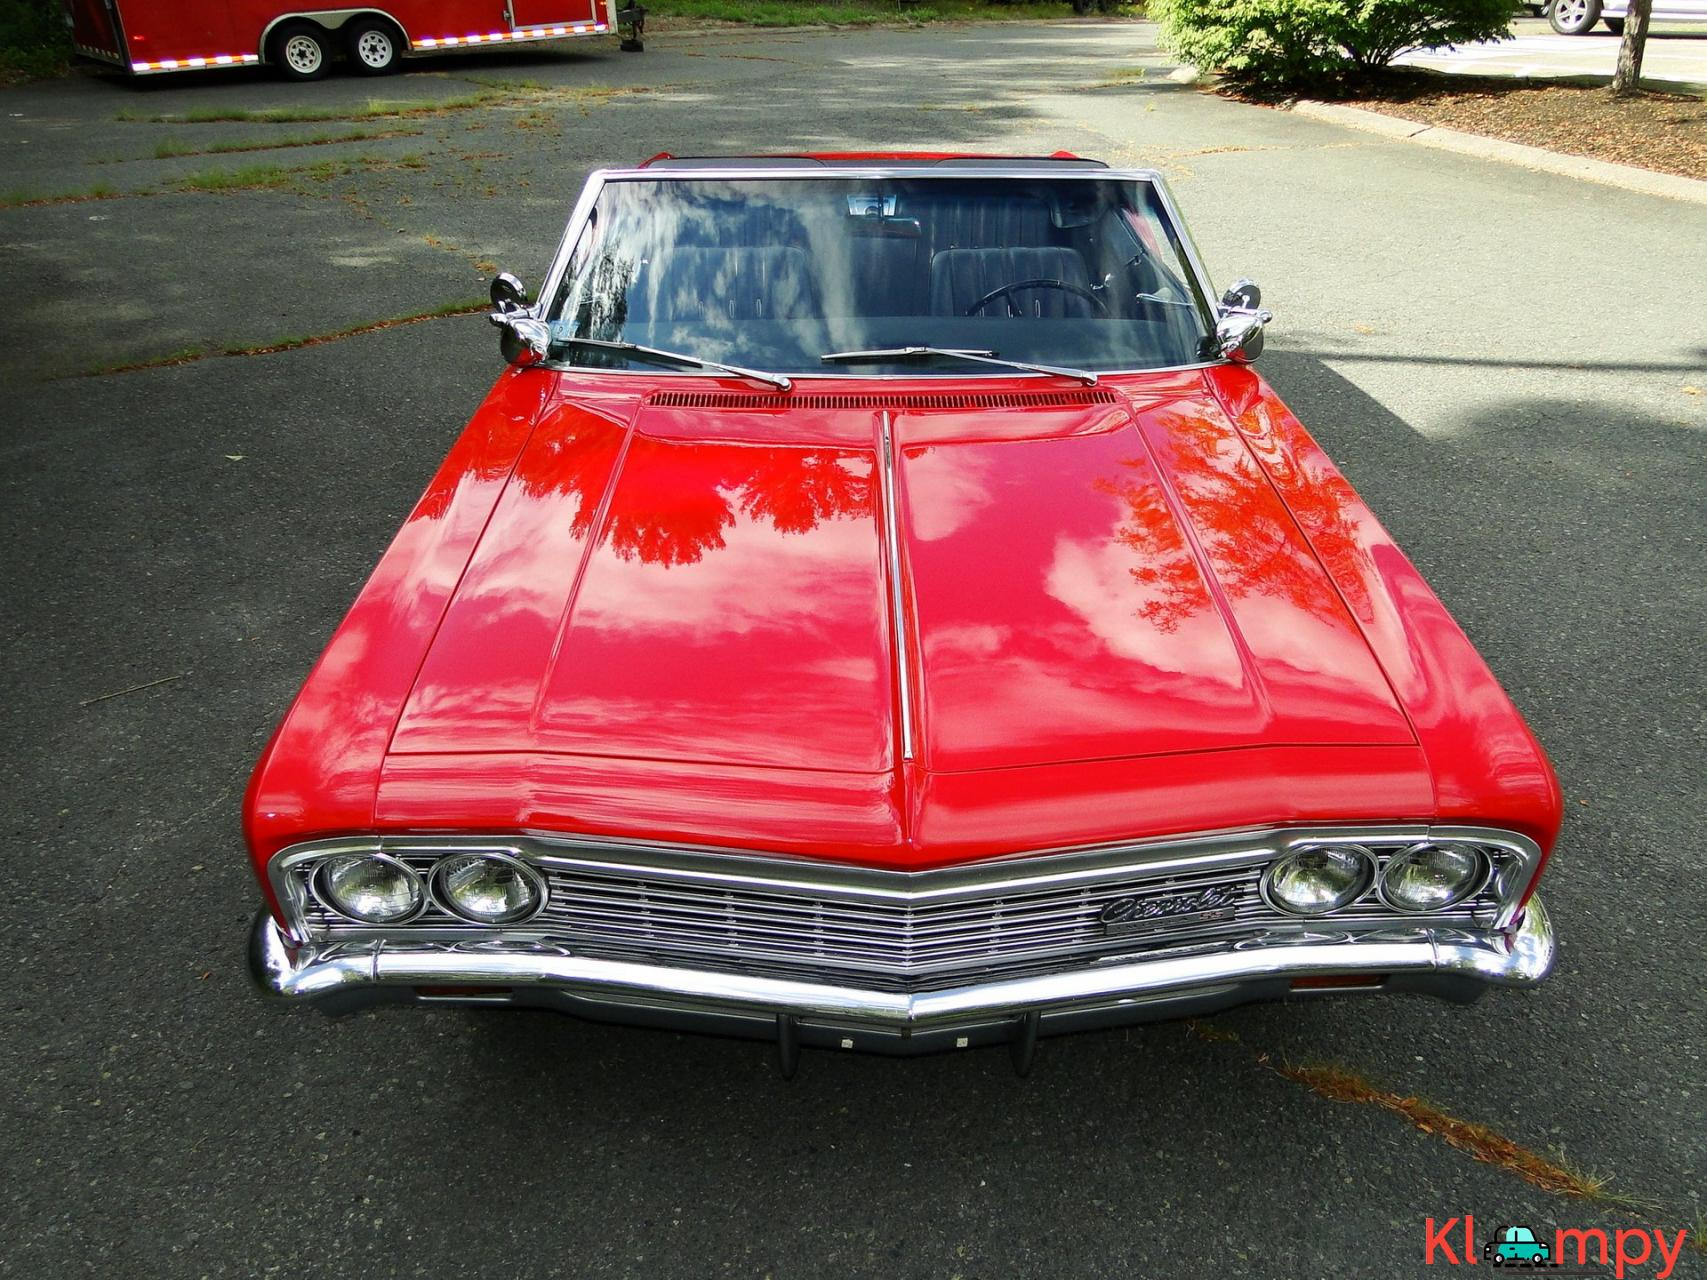 1966 Chevrolet Impala SS Convertible Regal Red V8 - 9/23